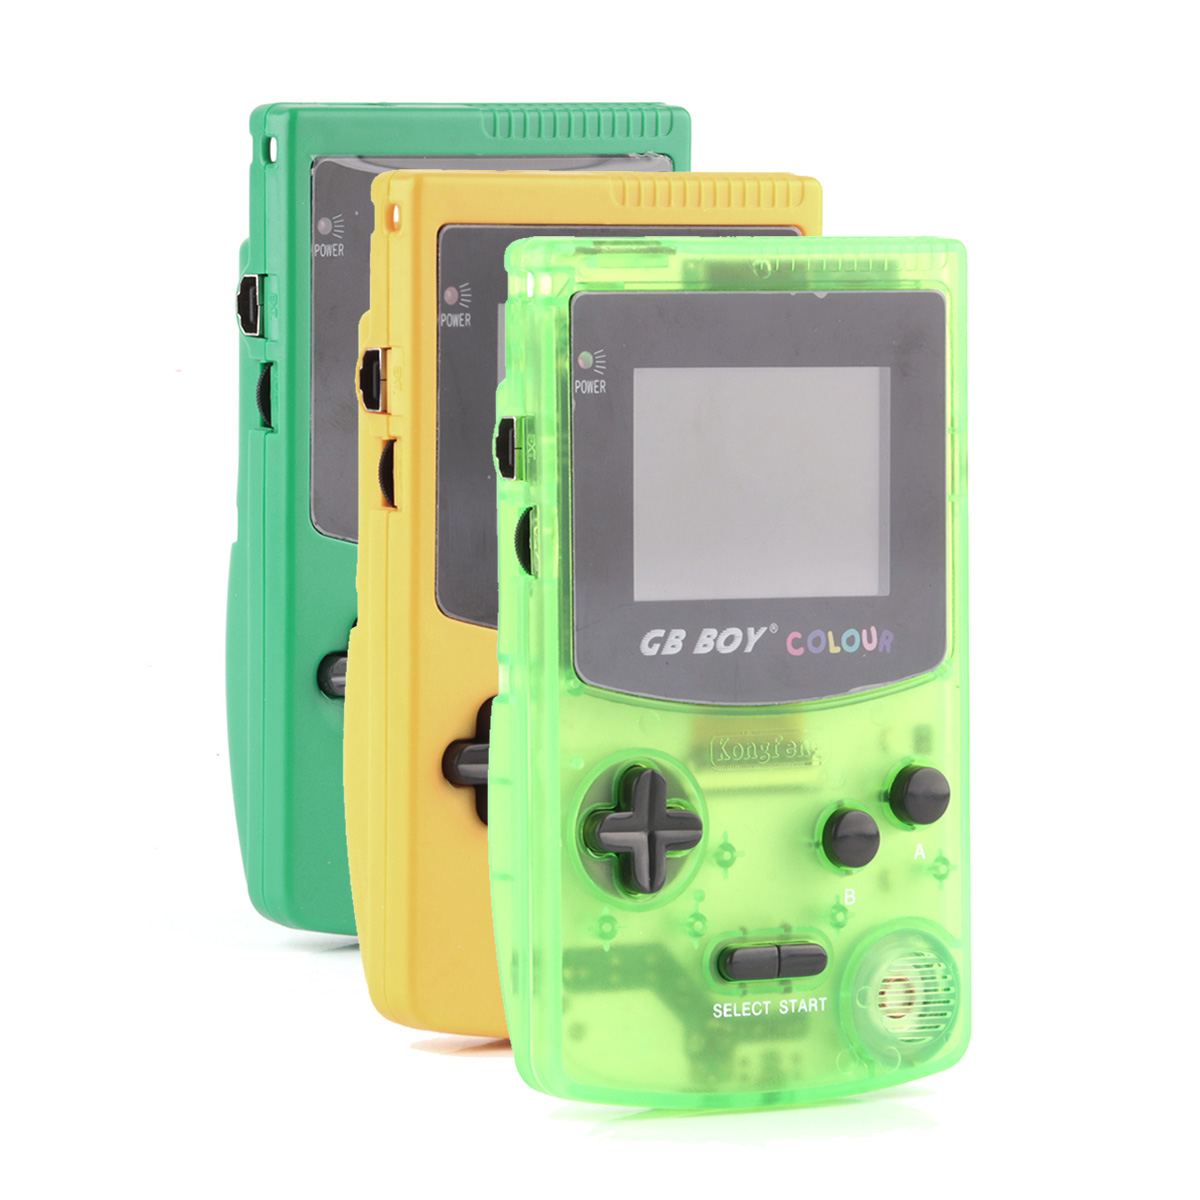 1PCS/Lot GB <font><b>Boy</b></font> Colour <font><b>Color</b></font> Handheld <font><b>Game</b></font> Player 2.7